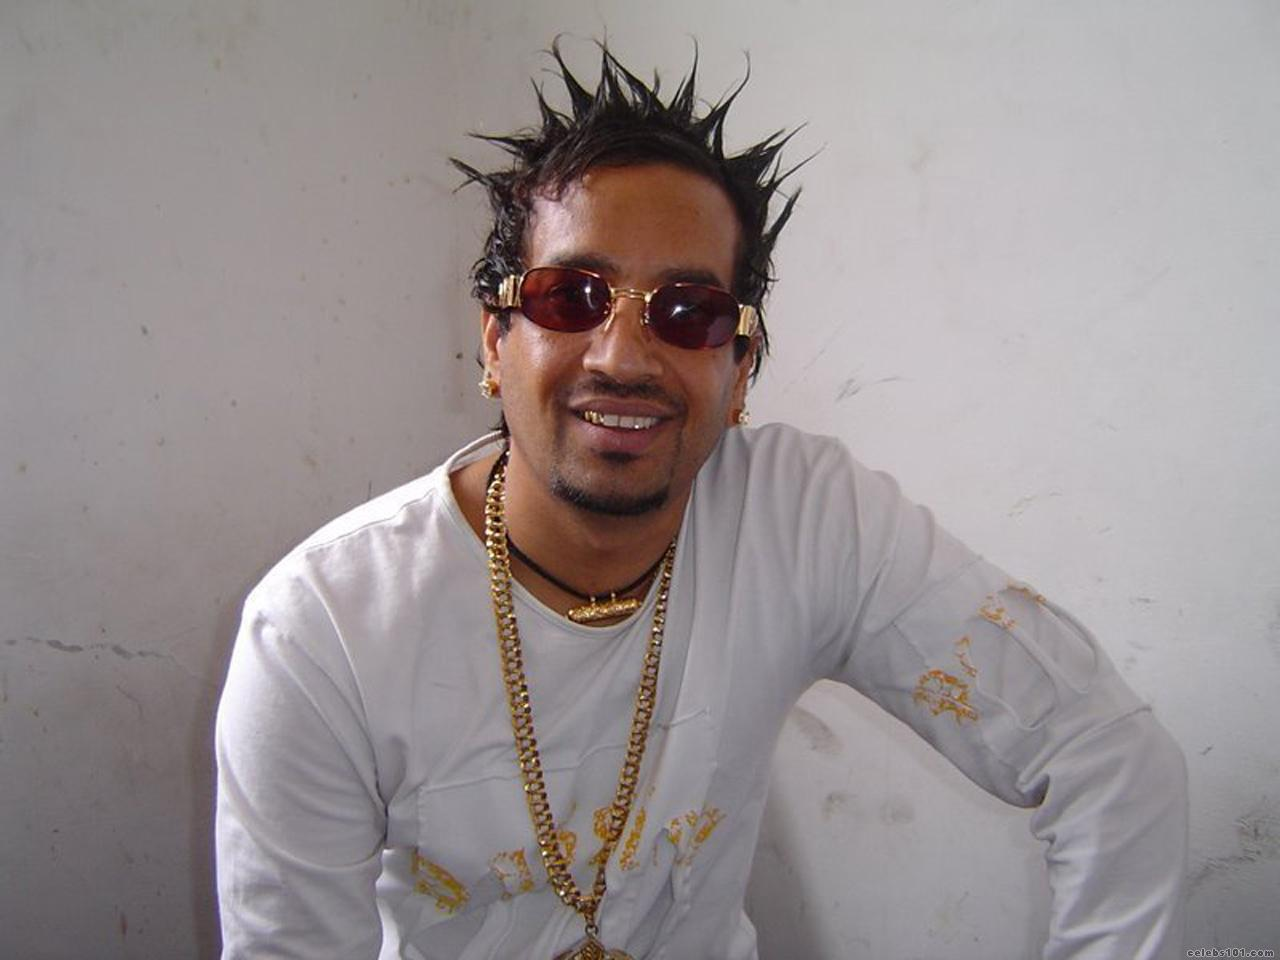 Jazzy B High quality wallpaper size 1280x960 of Jazzy B Wallpapers